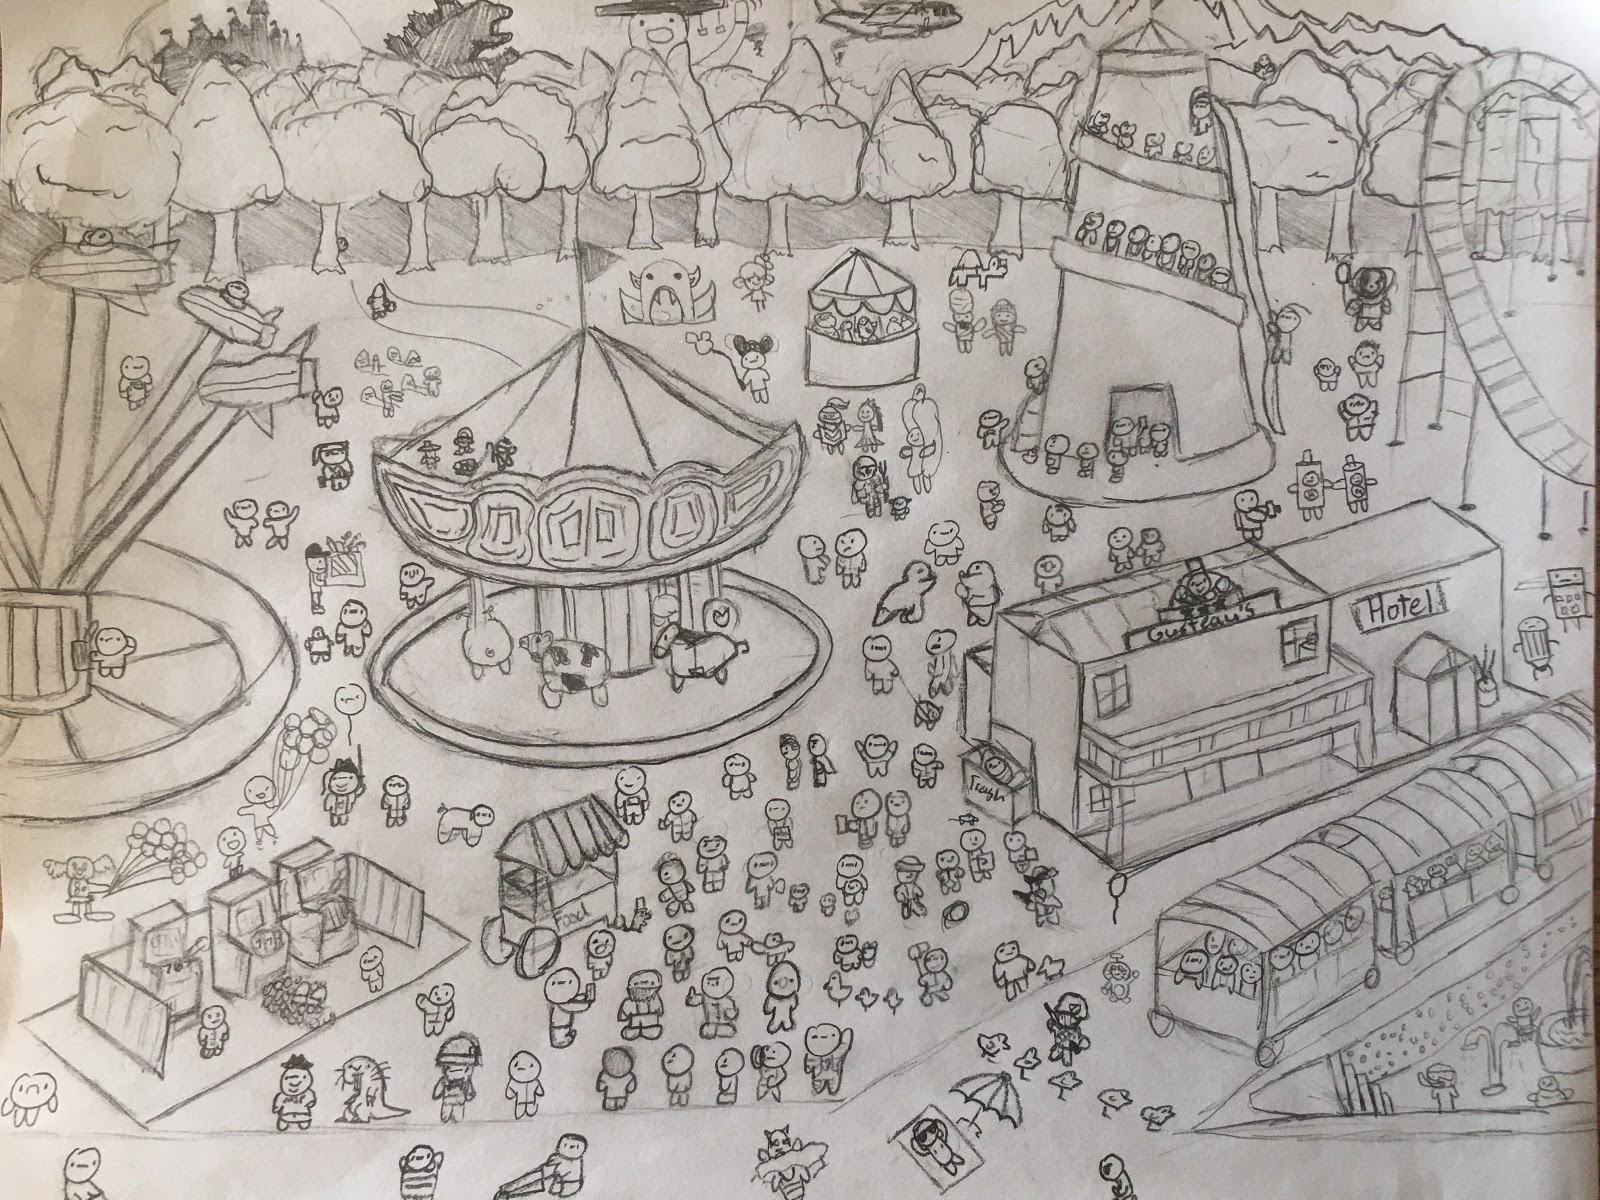 Drawing of a festival